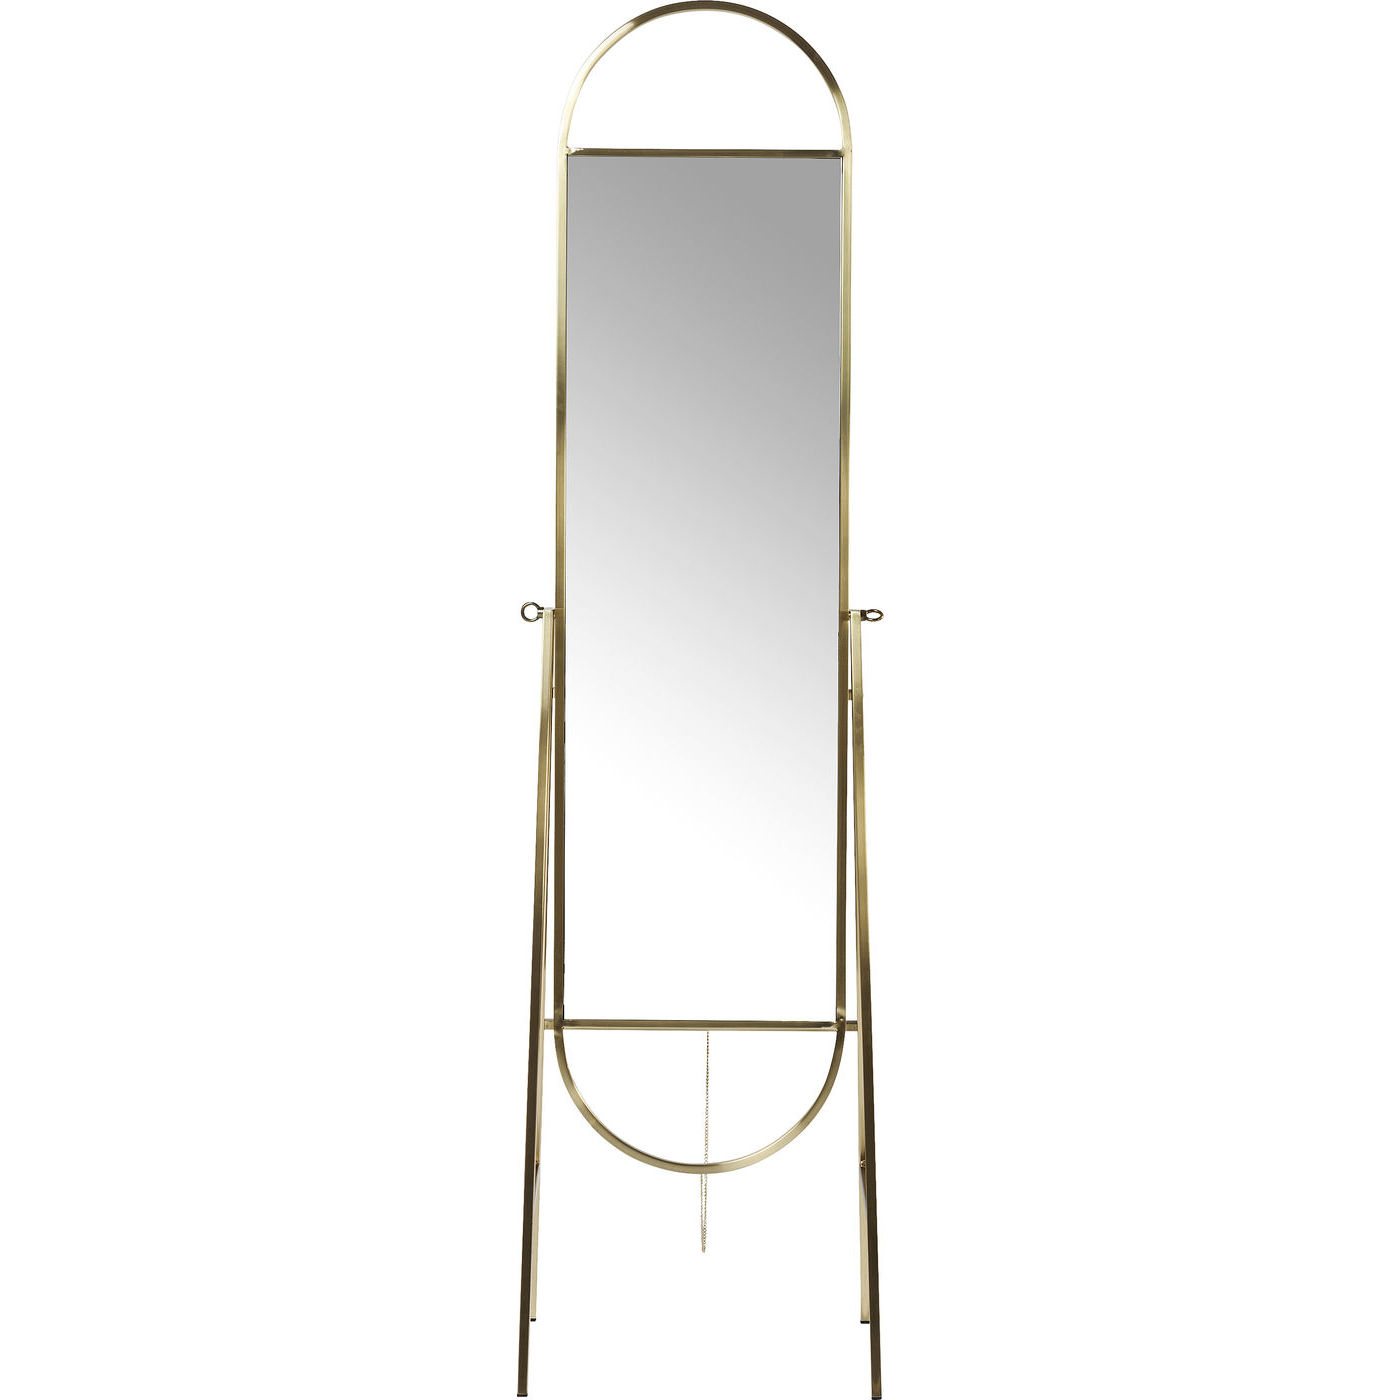 Image of   KARE DESIGN Standing Spejl, Casino Brass